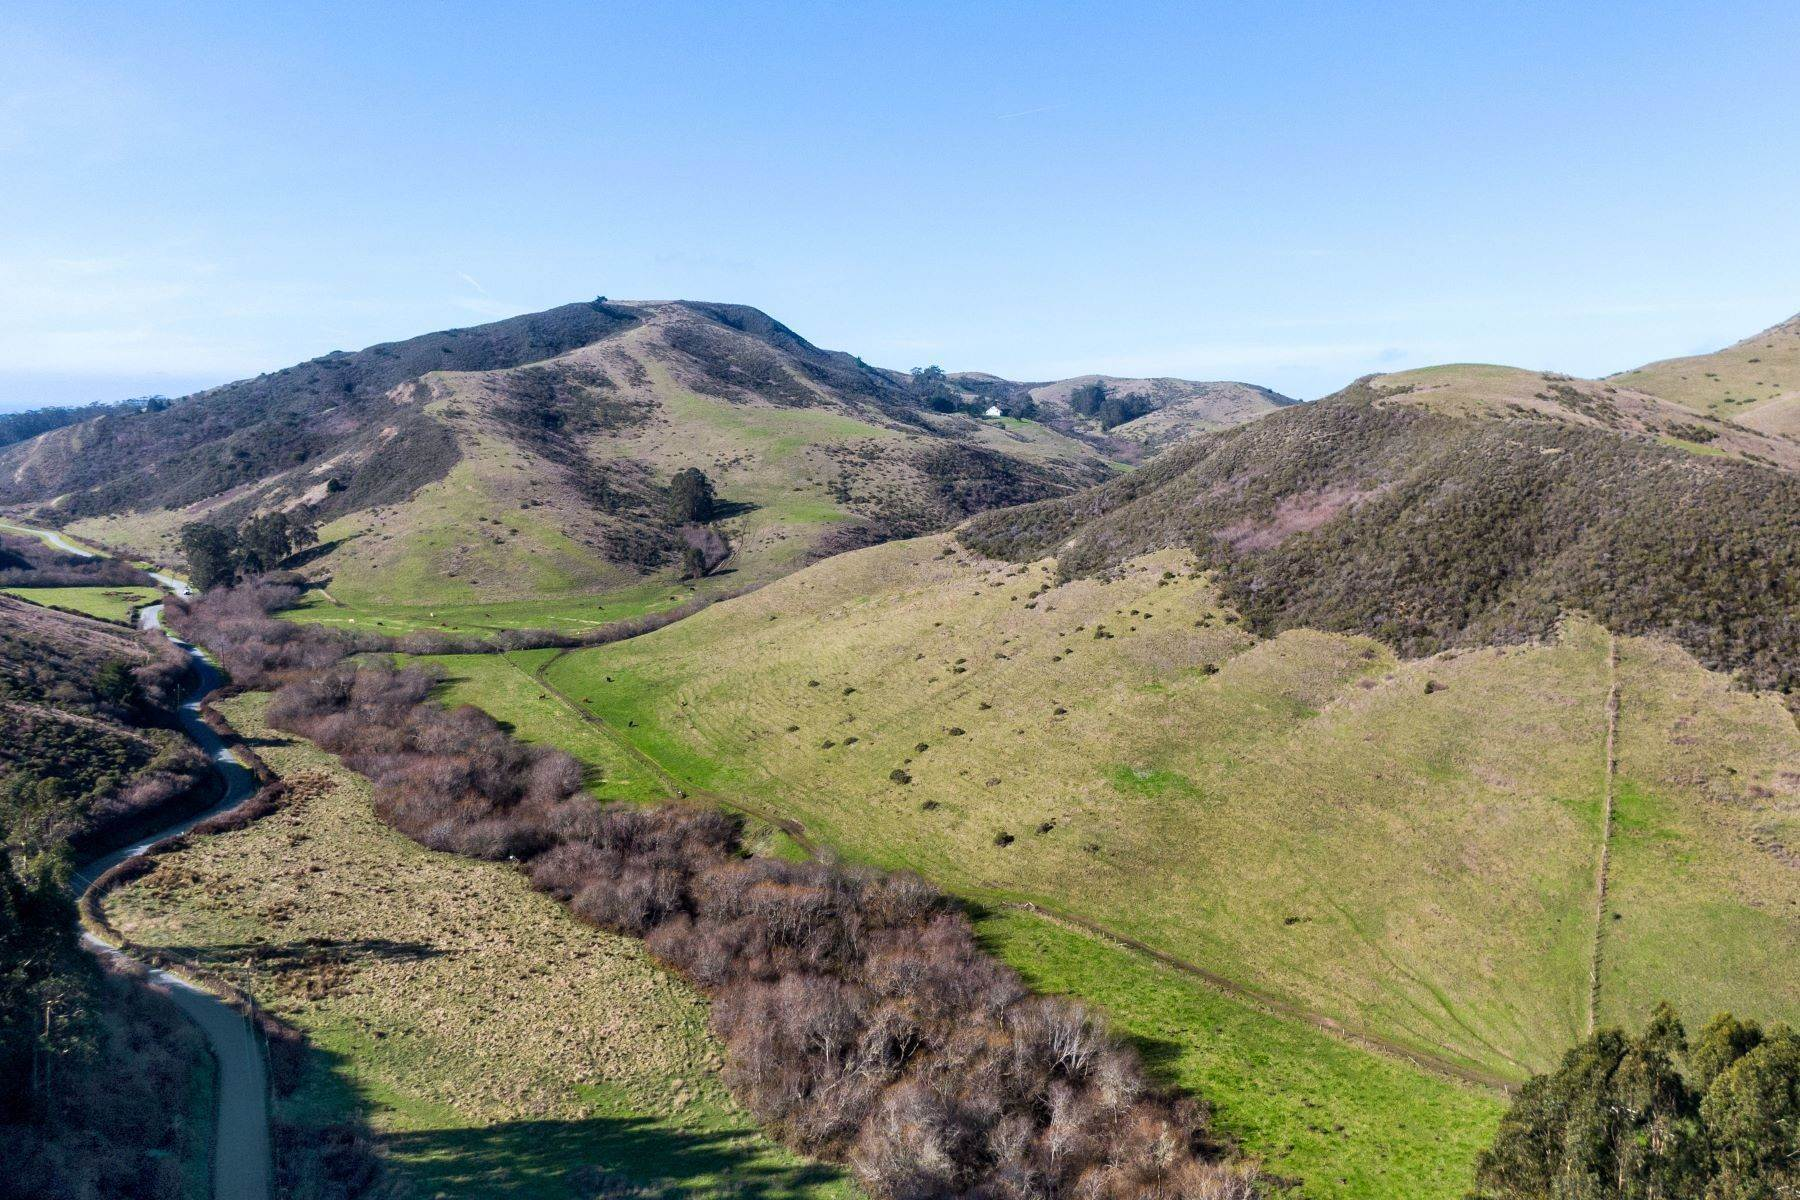 Multi-Family Homes for Sale at Own Your Own Valley in Silicon Valley 3225 Pomponio Creek Rd San Gregorio, California 94074 United States